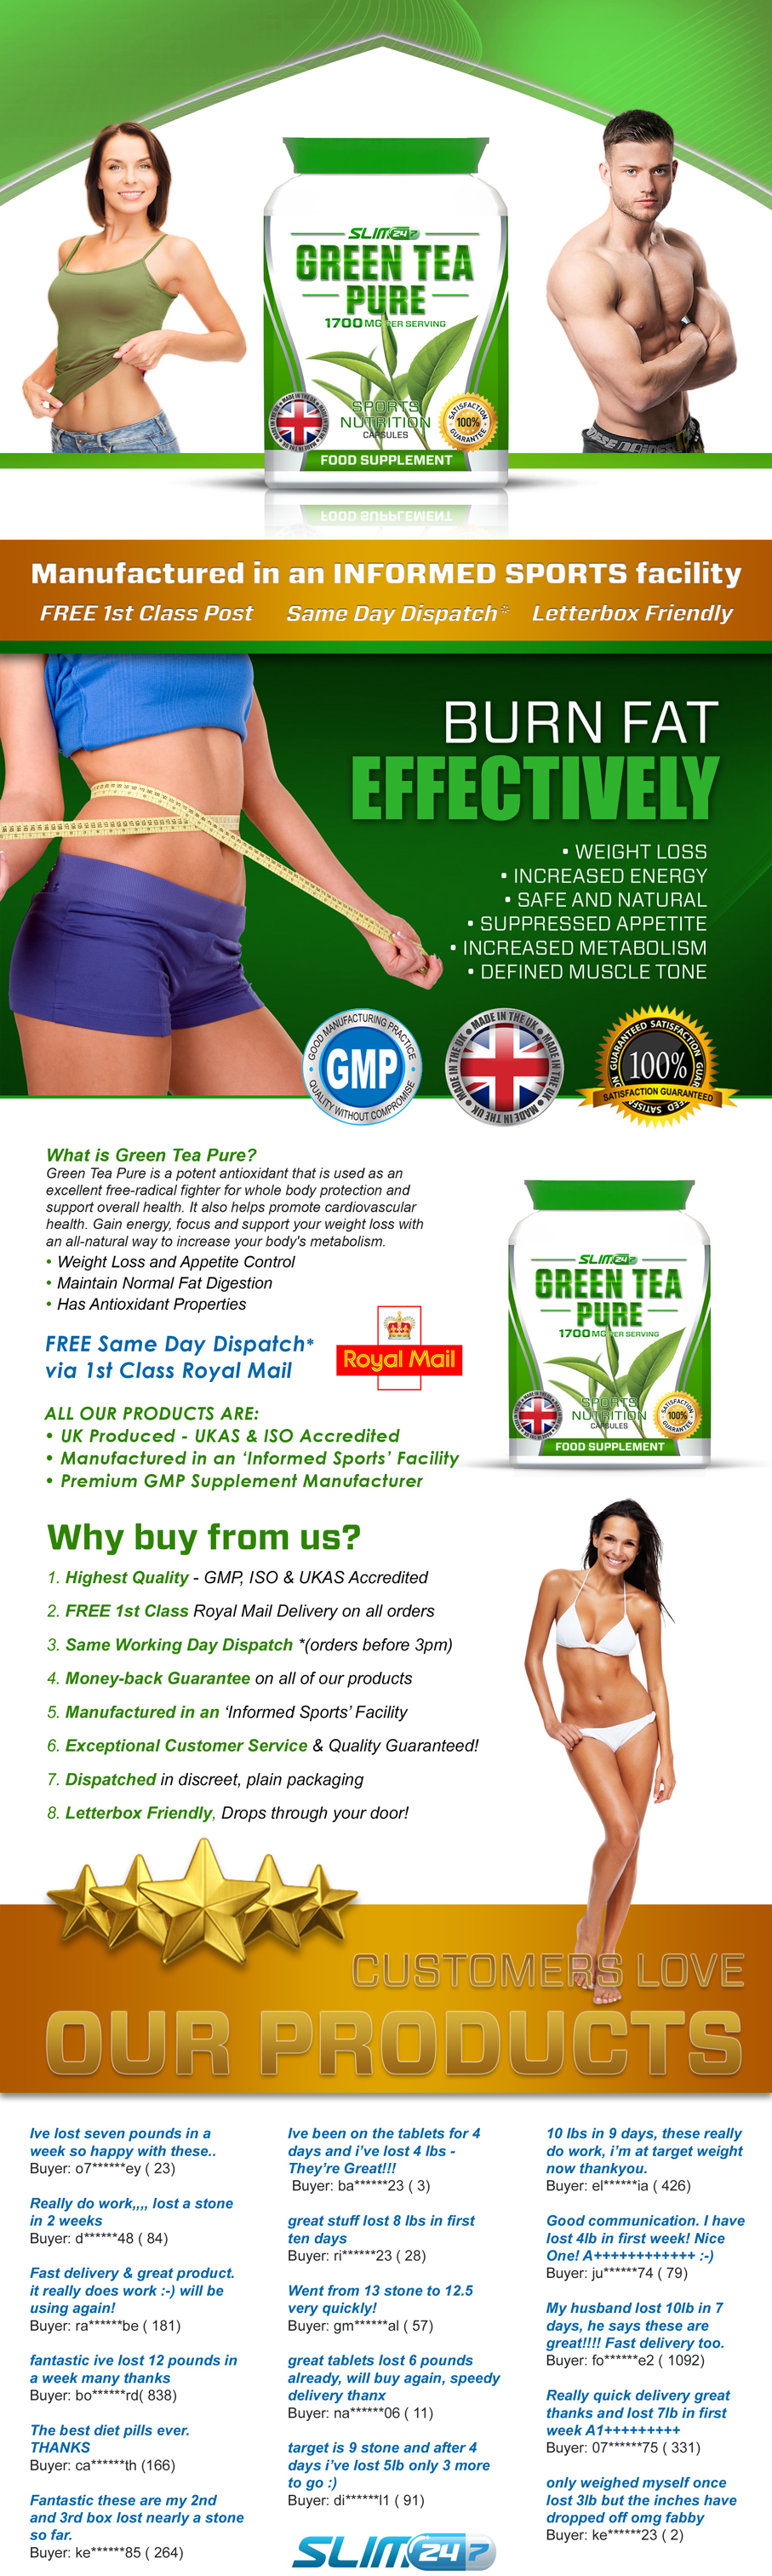 001_slim247_greentea